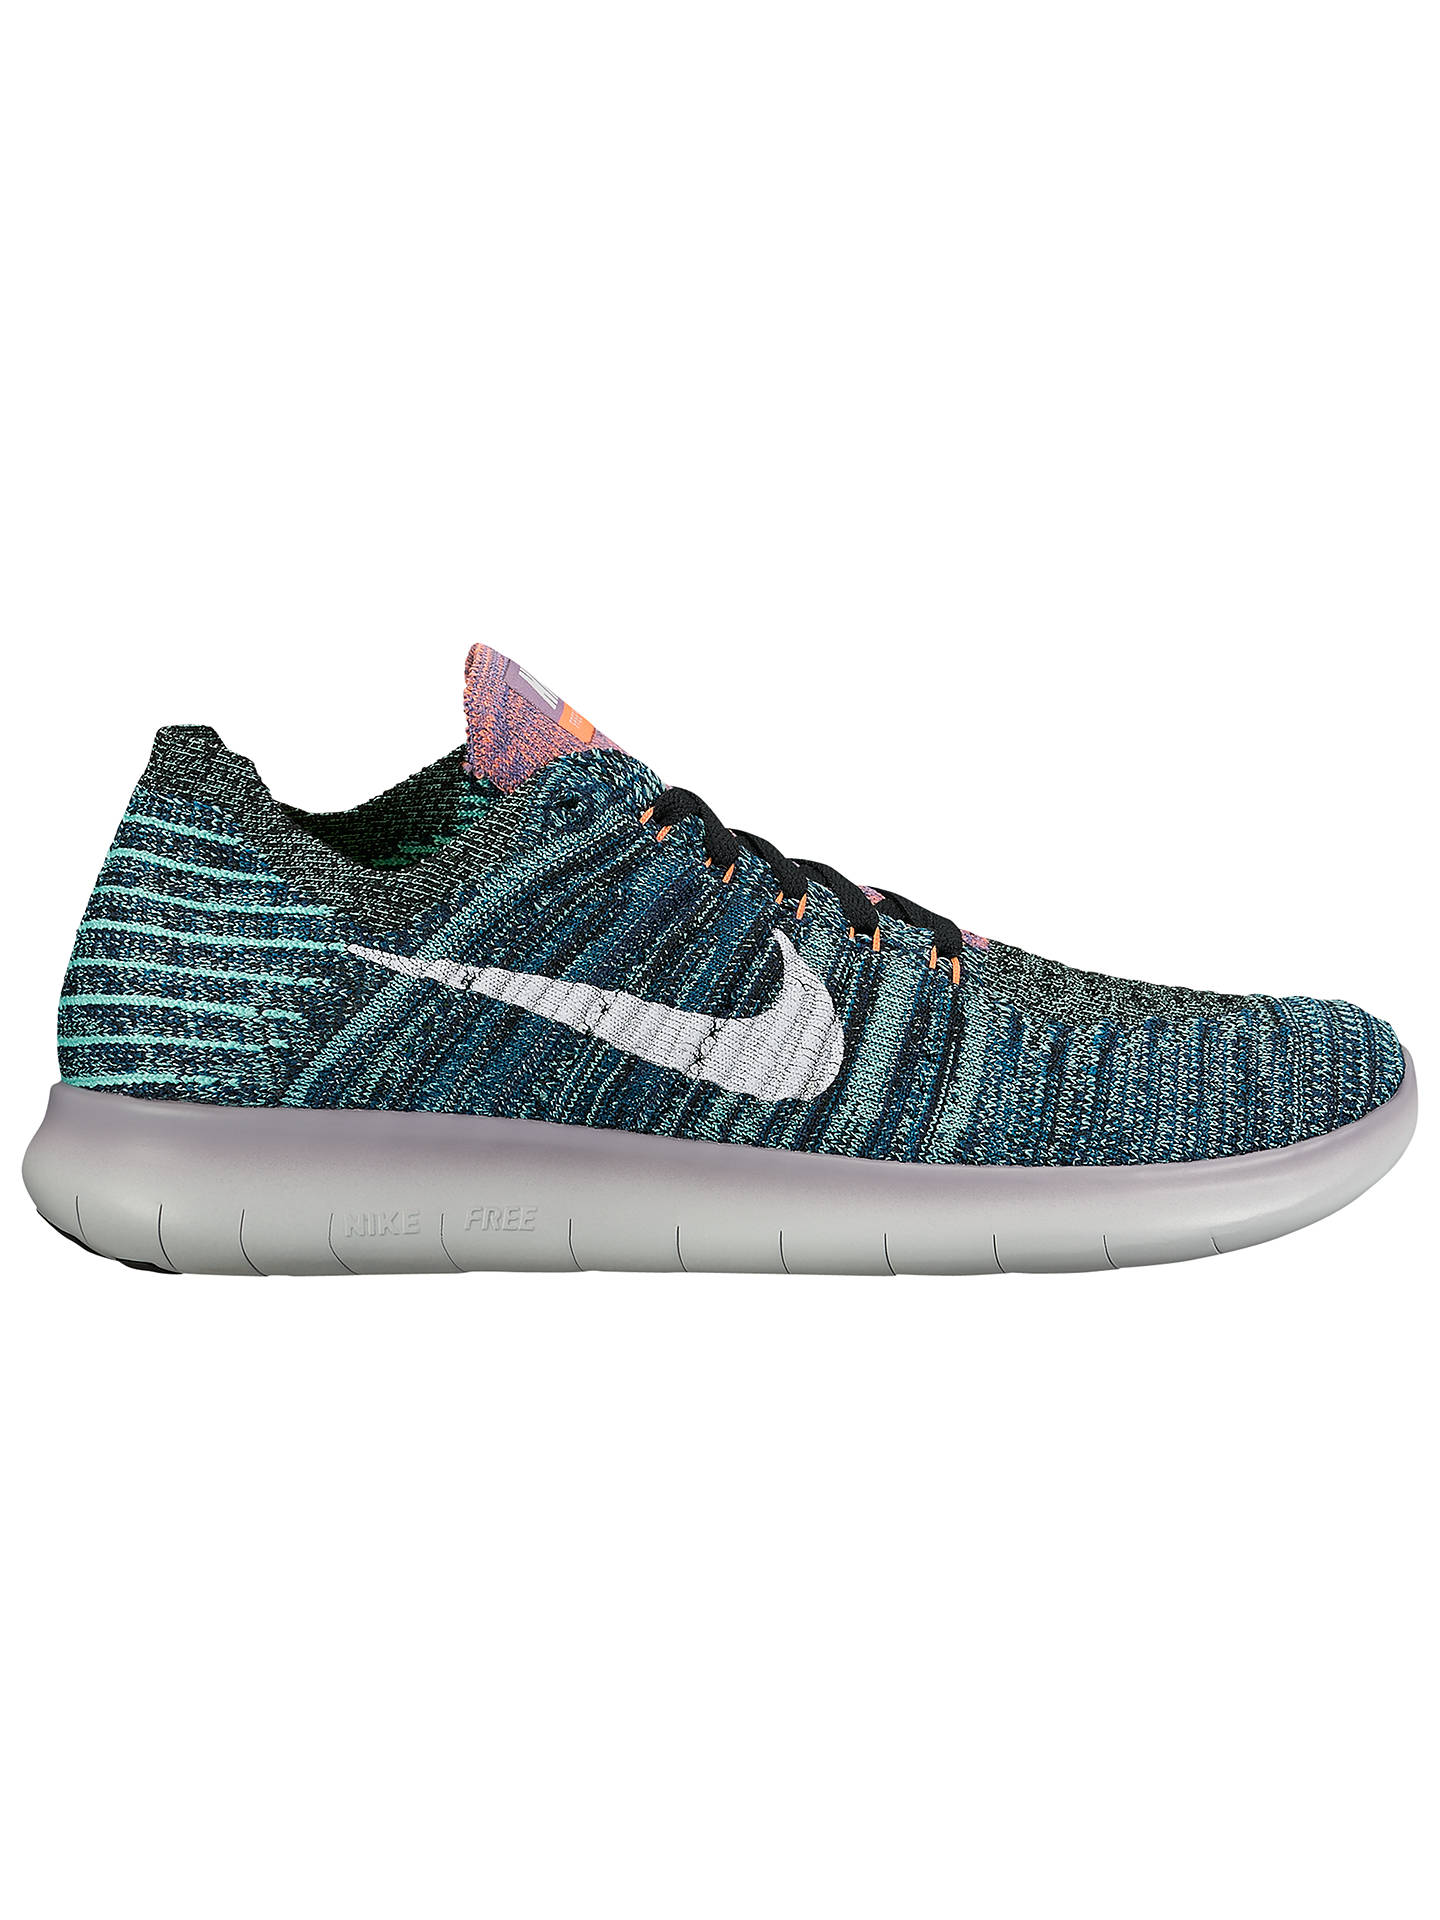 561cb03ccf76 Nike Free RN Flyknit Women s Running Shoes at John Lewis   Partners